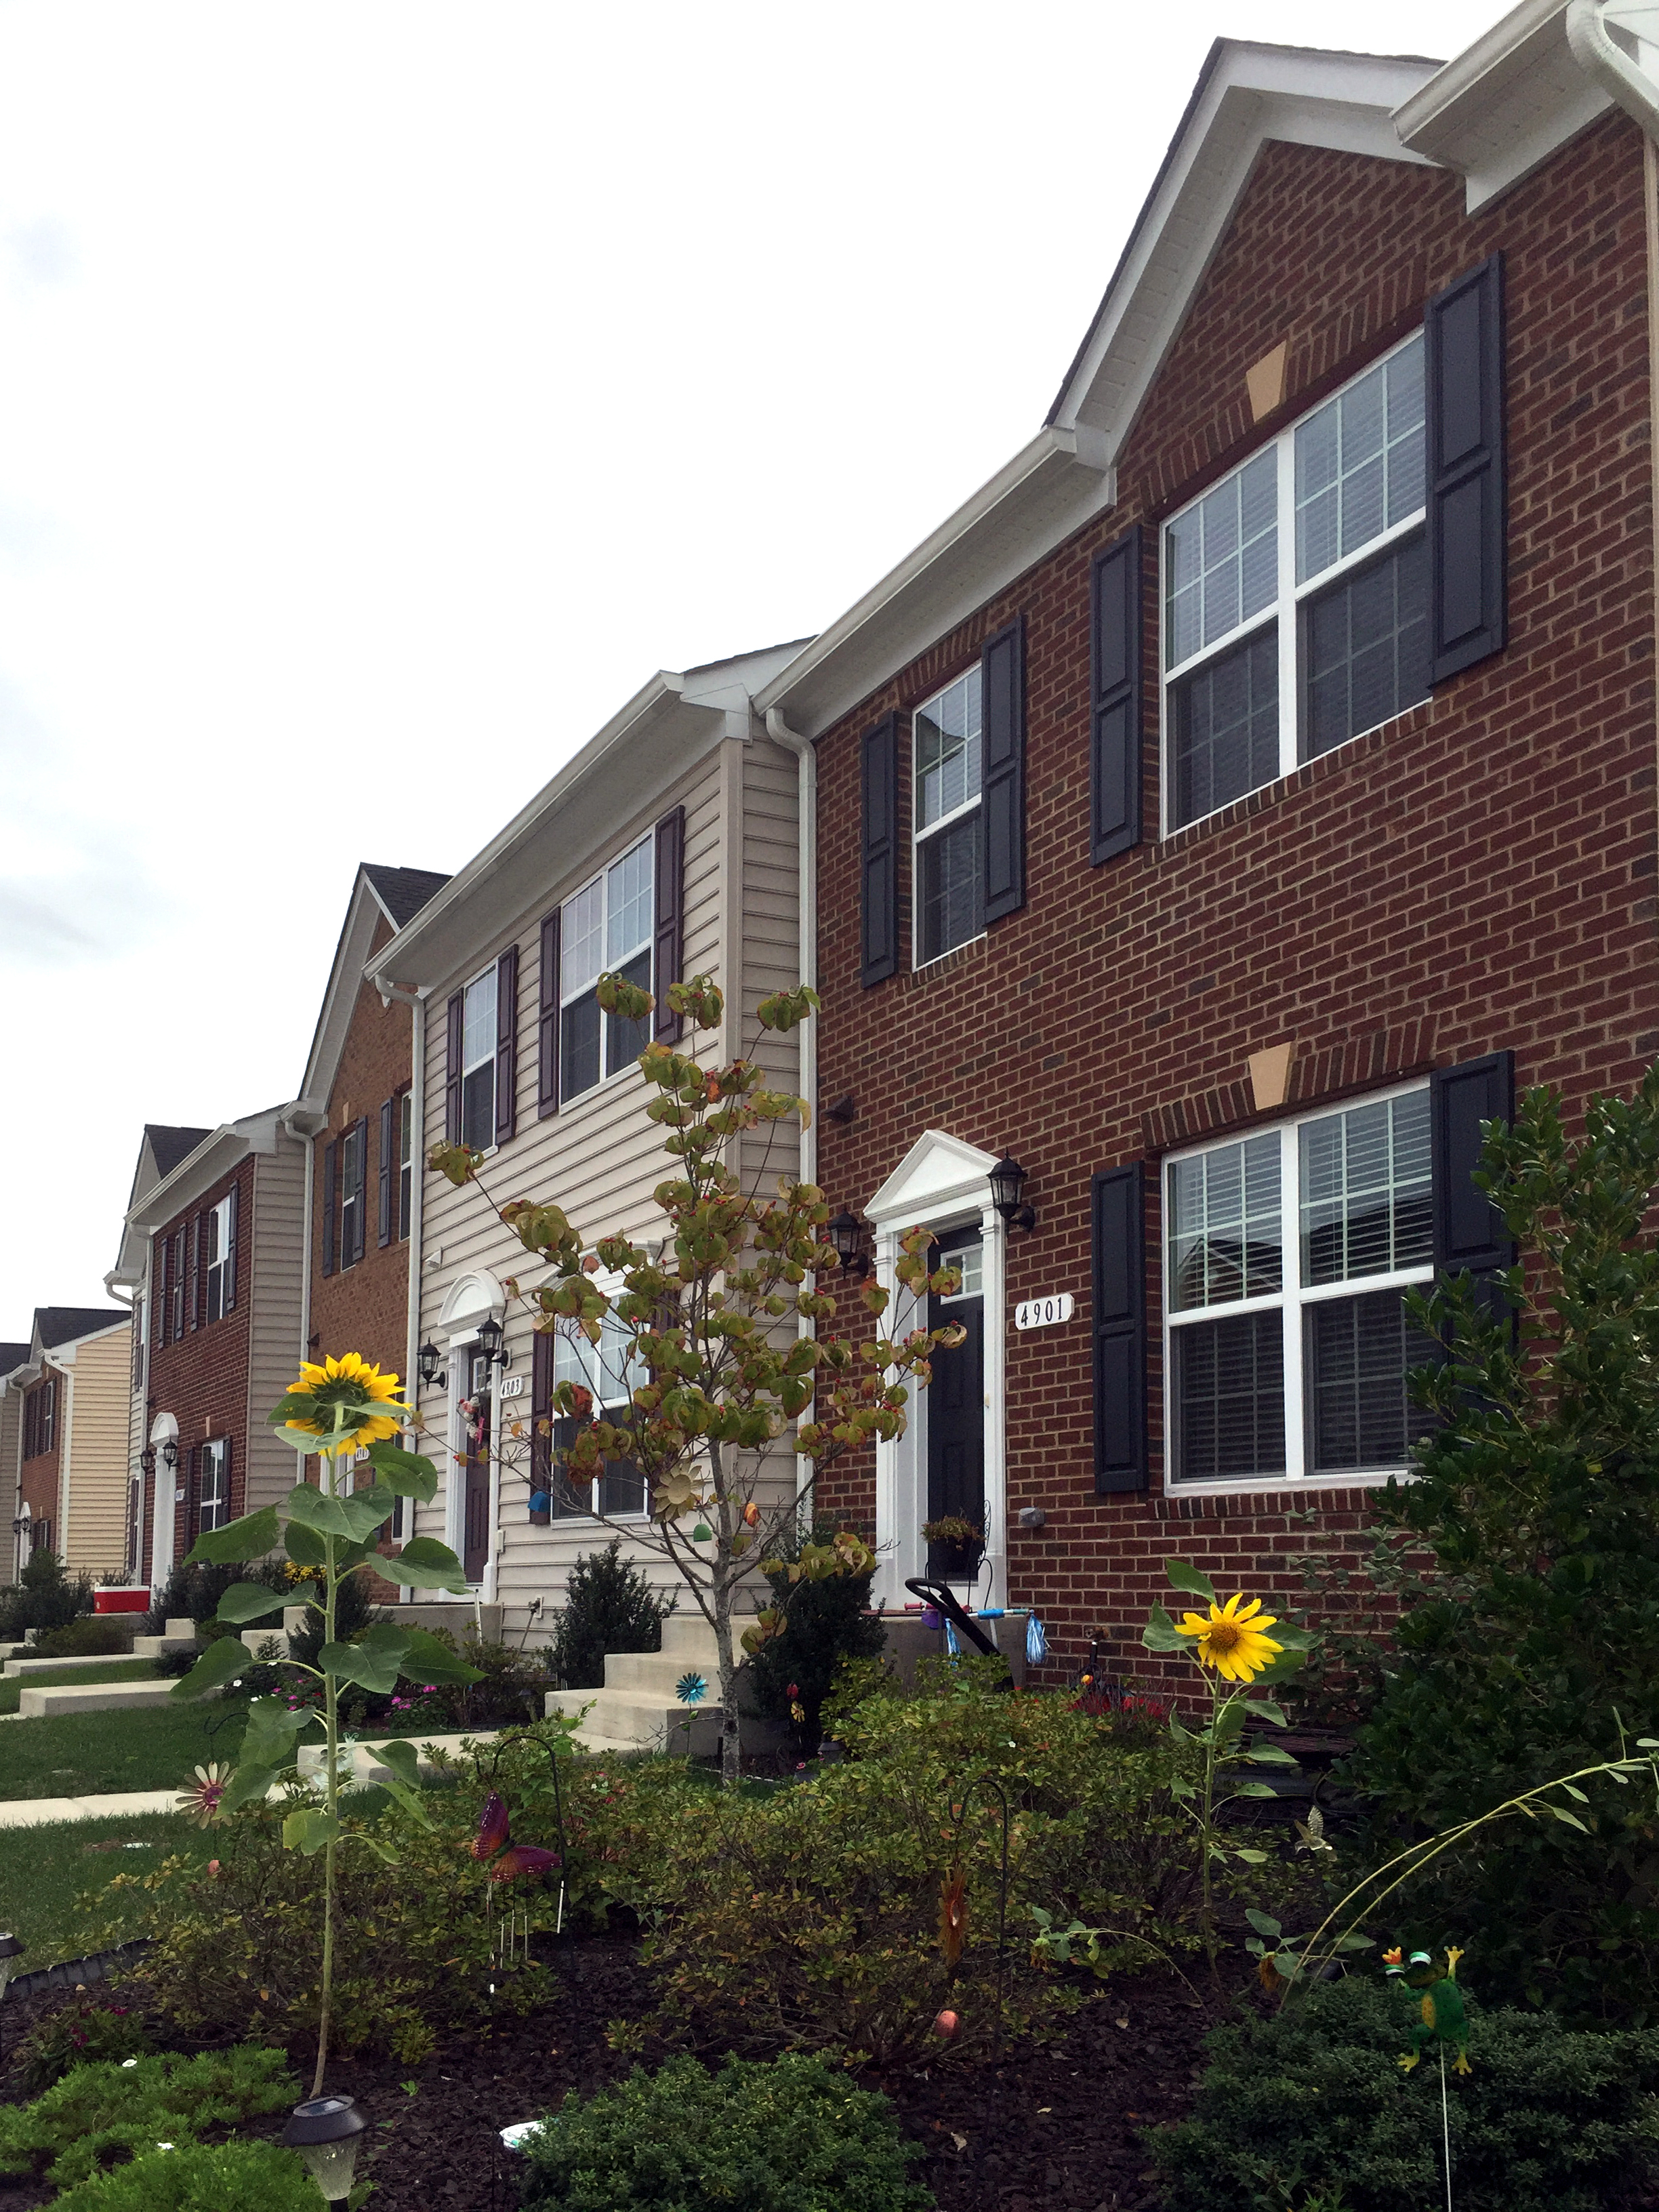 Townhomes at Lakeside Hazel Homes